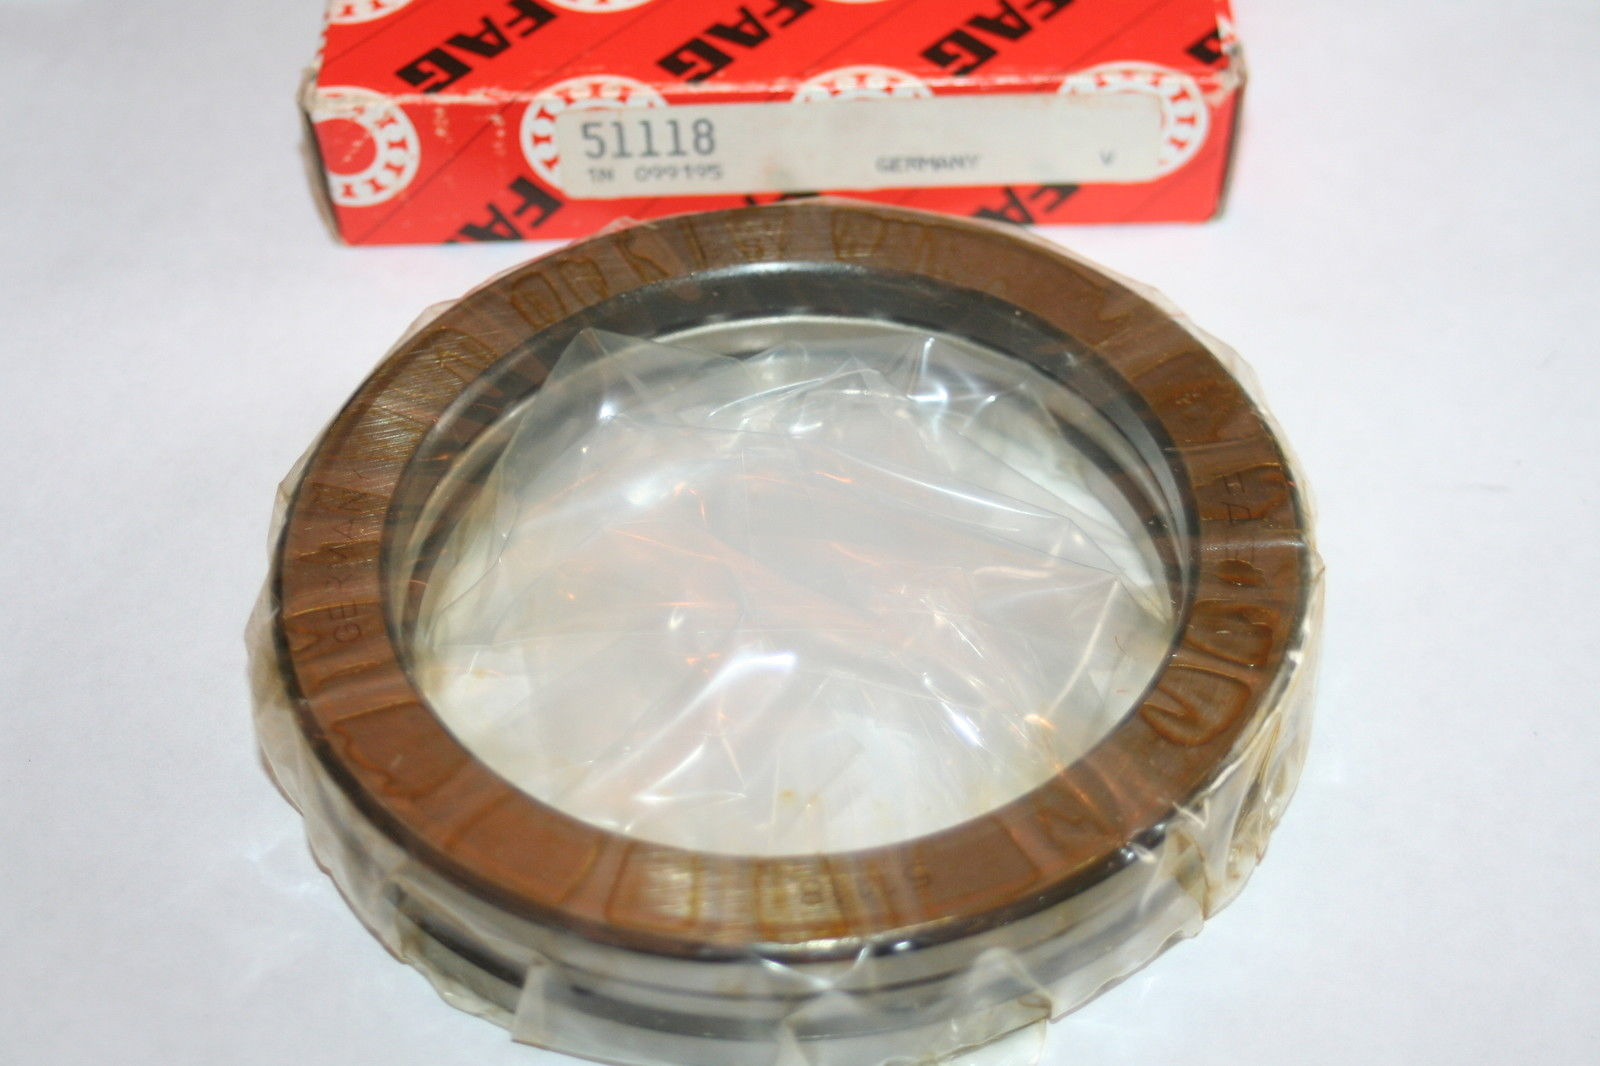 high temperature FAG 51118 Thrust Bearing  (90 X 120 X 22 mm)  *  *